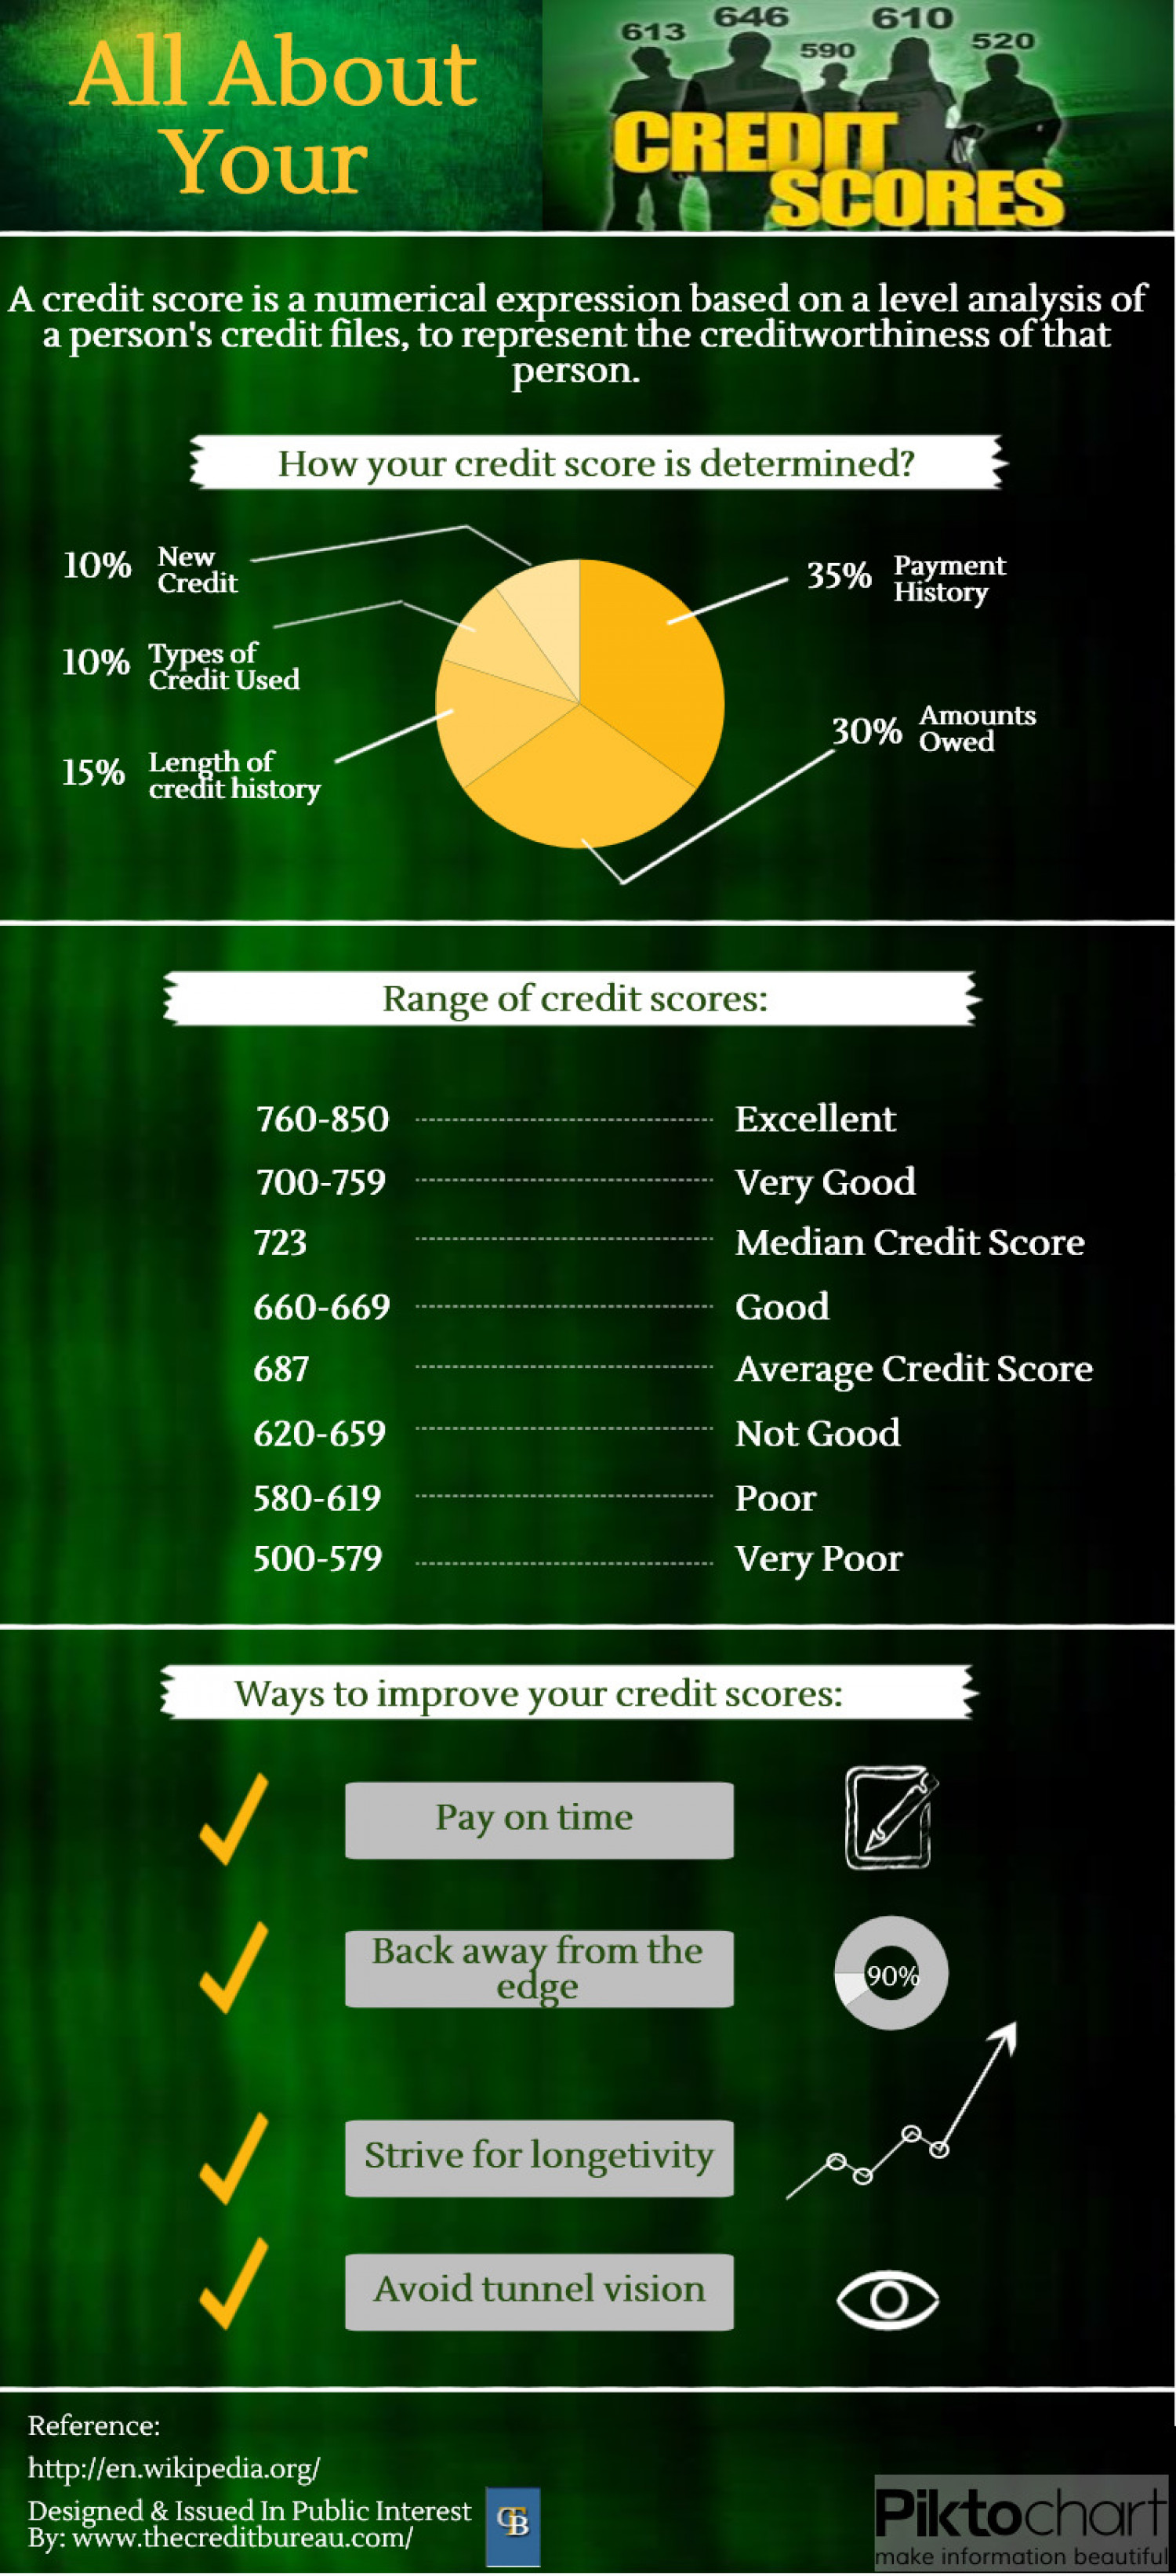 All About Your Credit Score Infographic